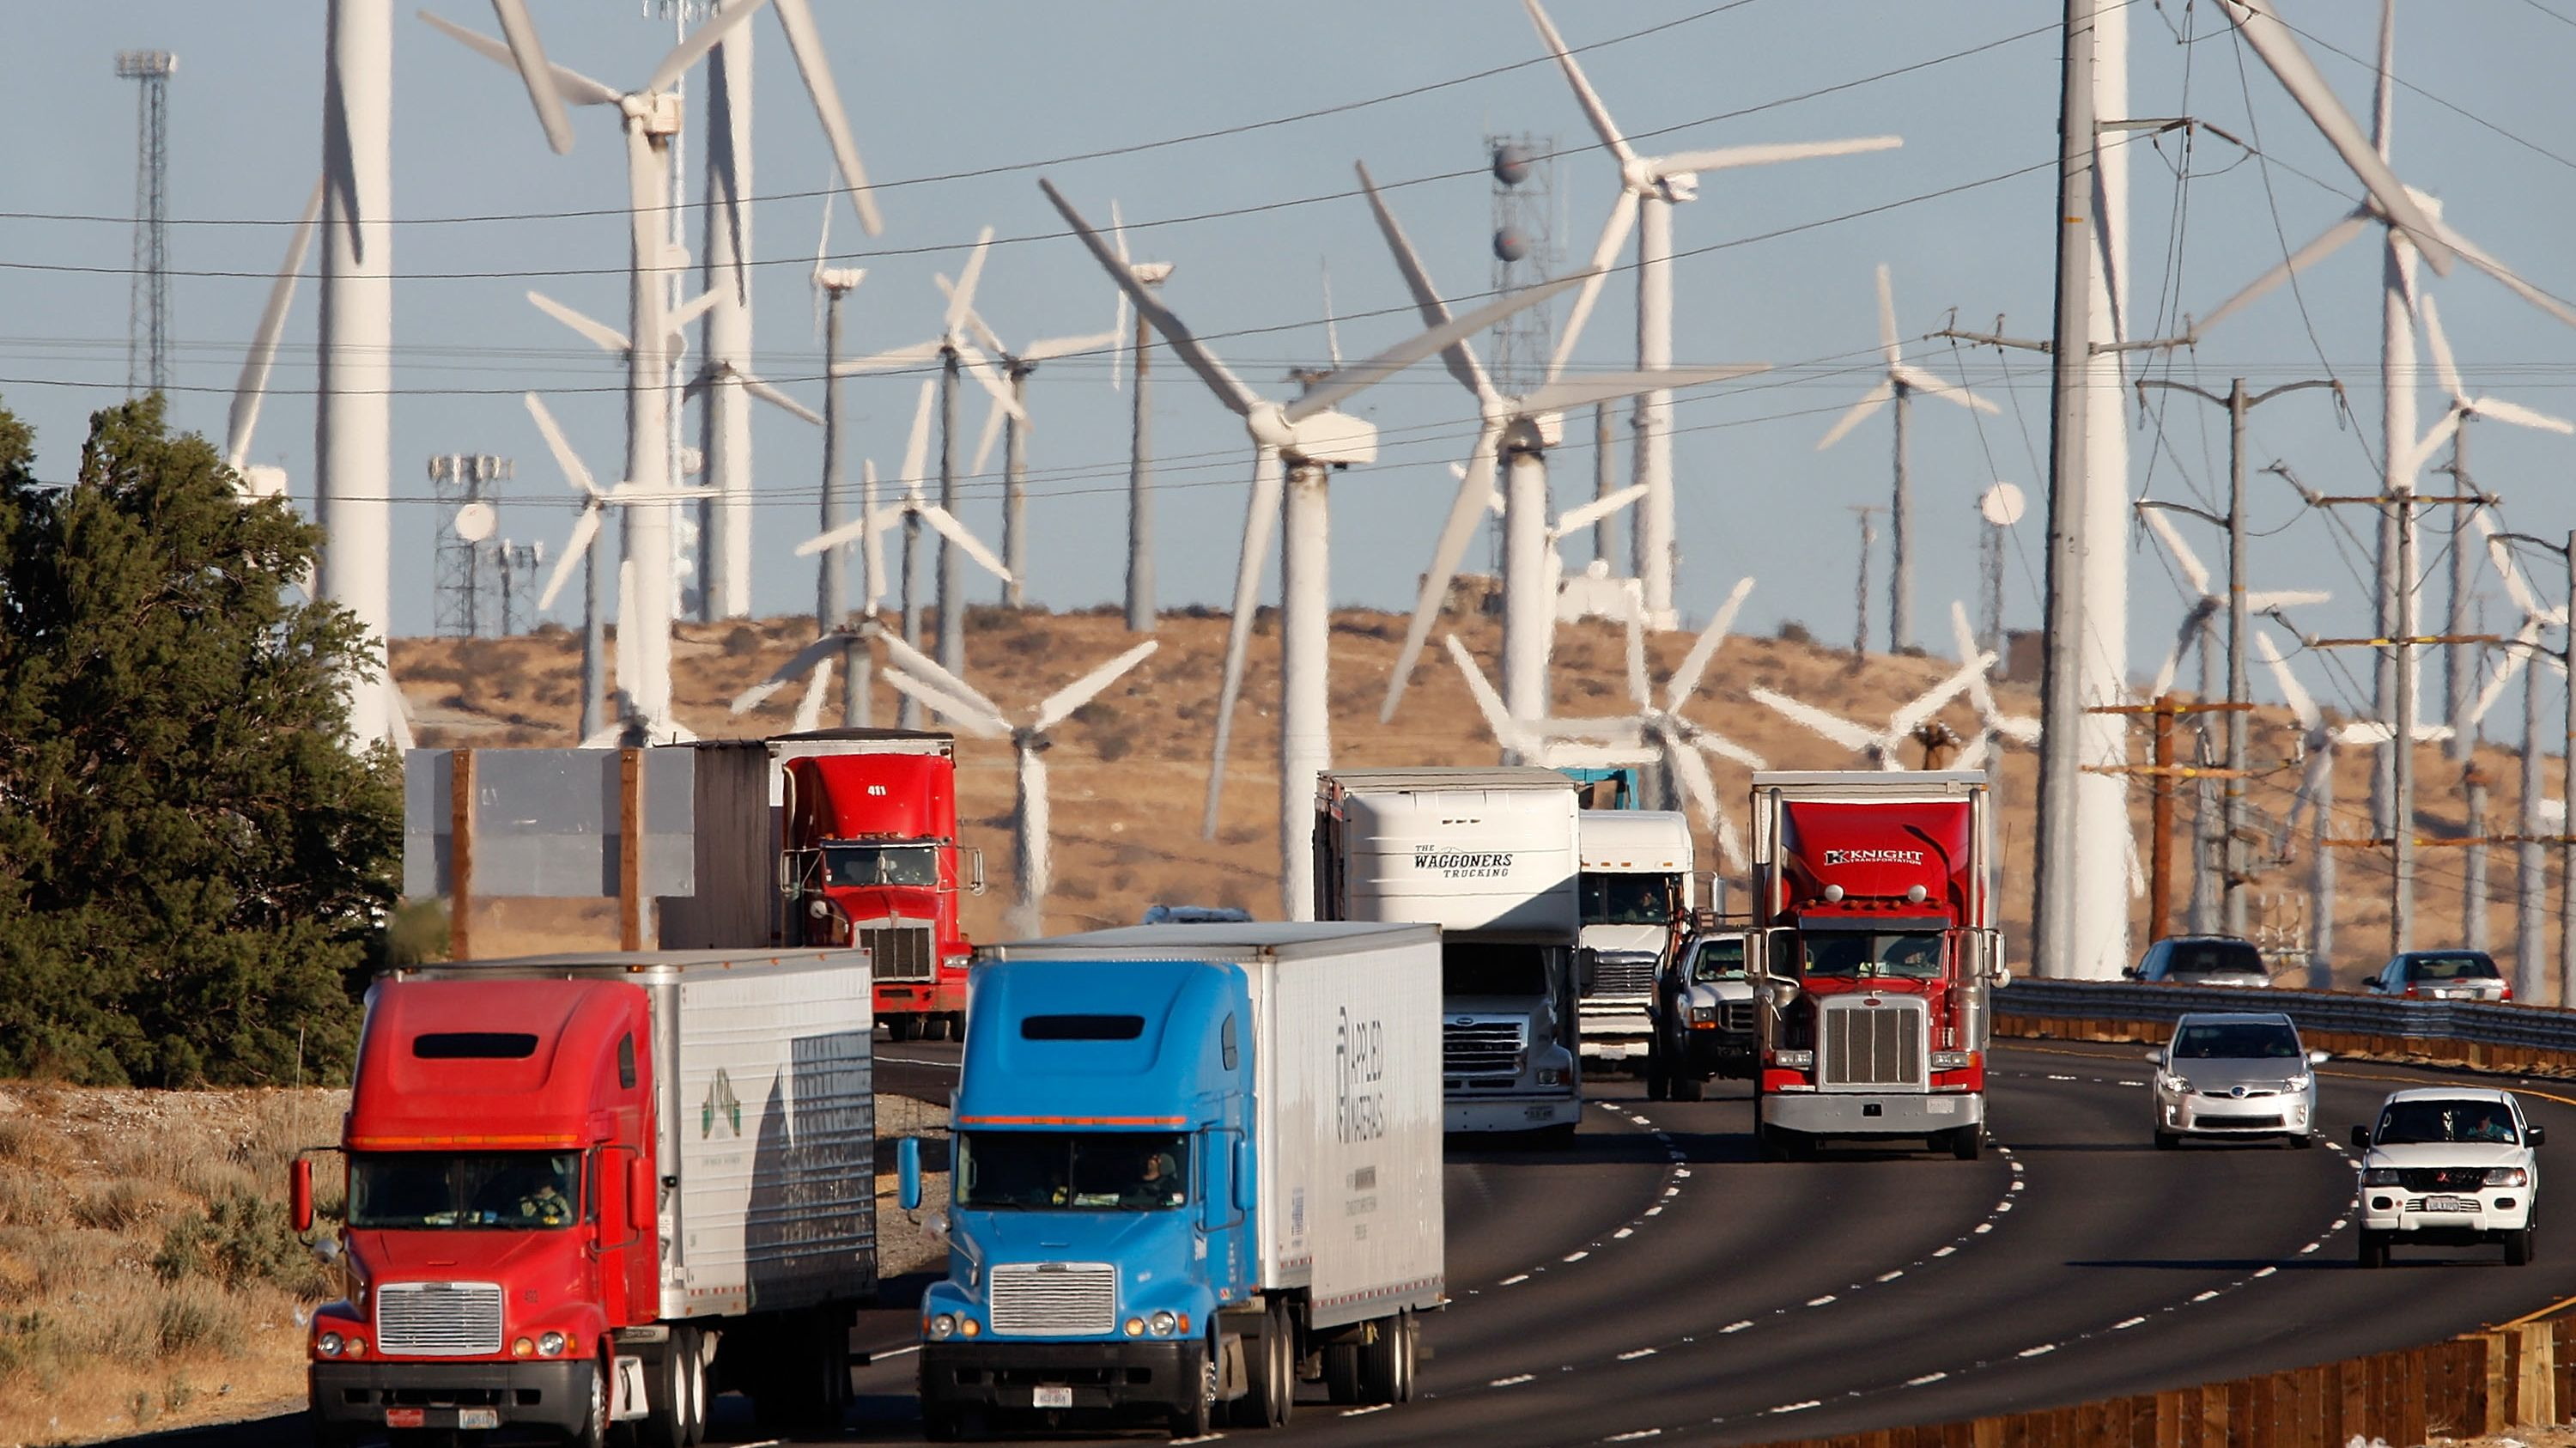 BANNING, CA - DECEMBER 8:  Emissions-producing diesel trucks and cars pass non-polluting windmills along the 10 freeway on December 8, 2009 near Banning, California. Sustained global warming shows no sign of letting up according to new analysis by the World Meteorological Organization made public at the climate talks in Copenhagen. Although global temperature fluctuates from year to year, overall the decade of the 2000s is likely the warmest decade in the past 150 years covered by the report. This decade is warmer than the 1990s which were warmer than the 1980s, and so on. The conclusion meshes with independent analysis by the National Climatic Data Center and NASA.  (Photo by David McNew/Getty Images)